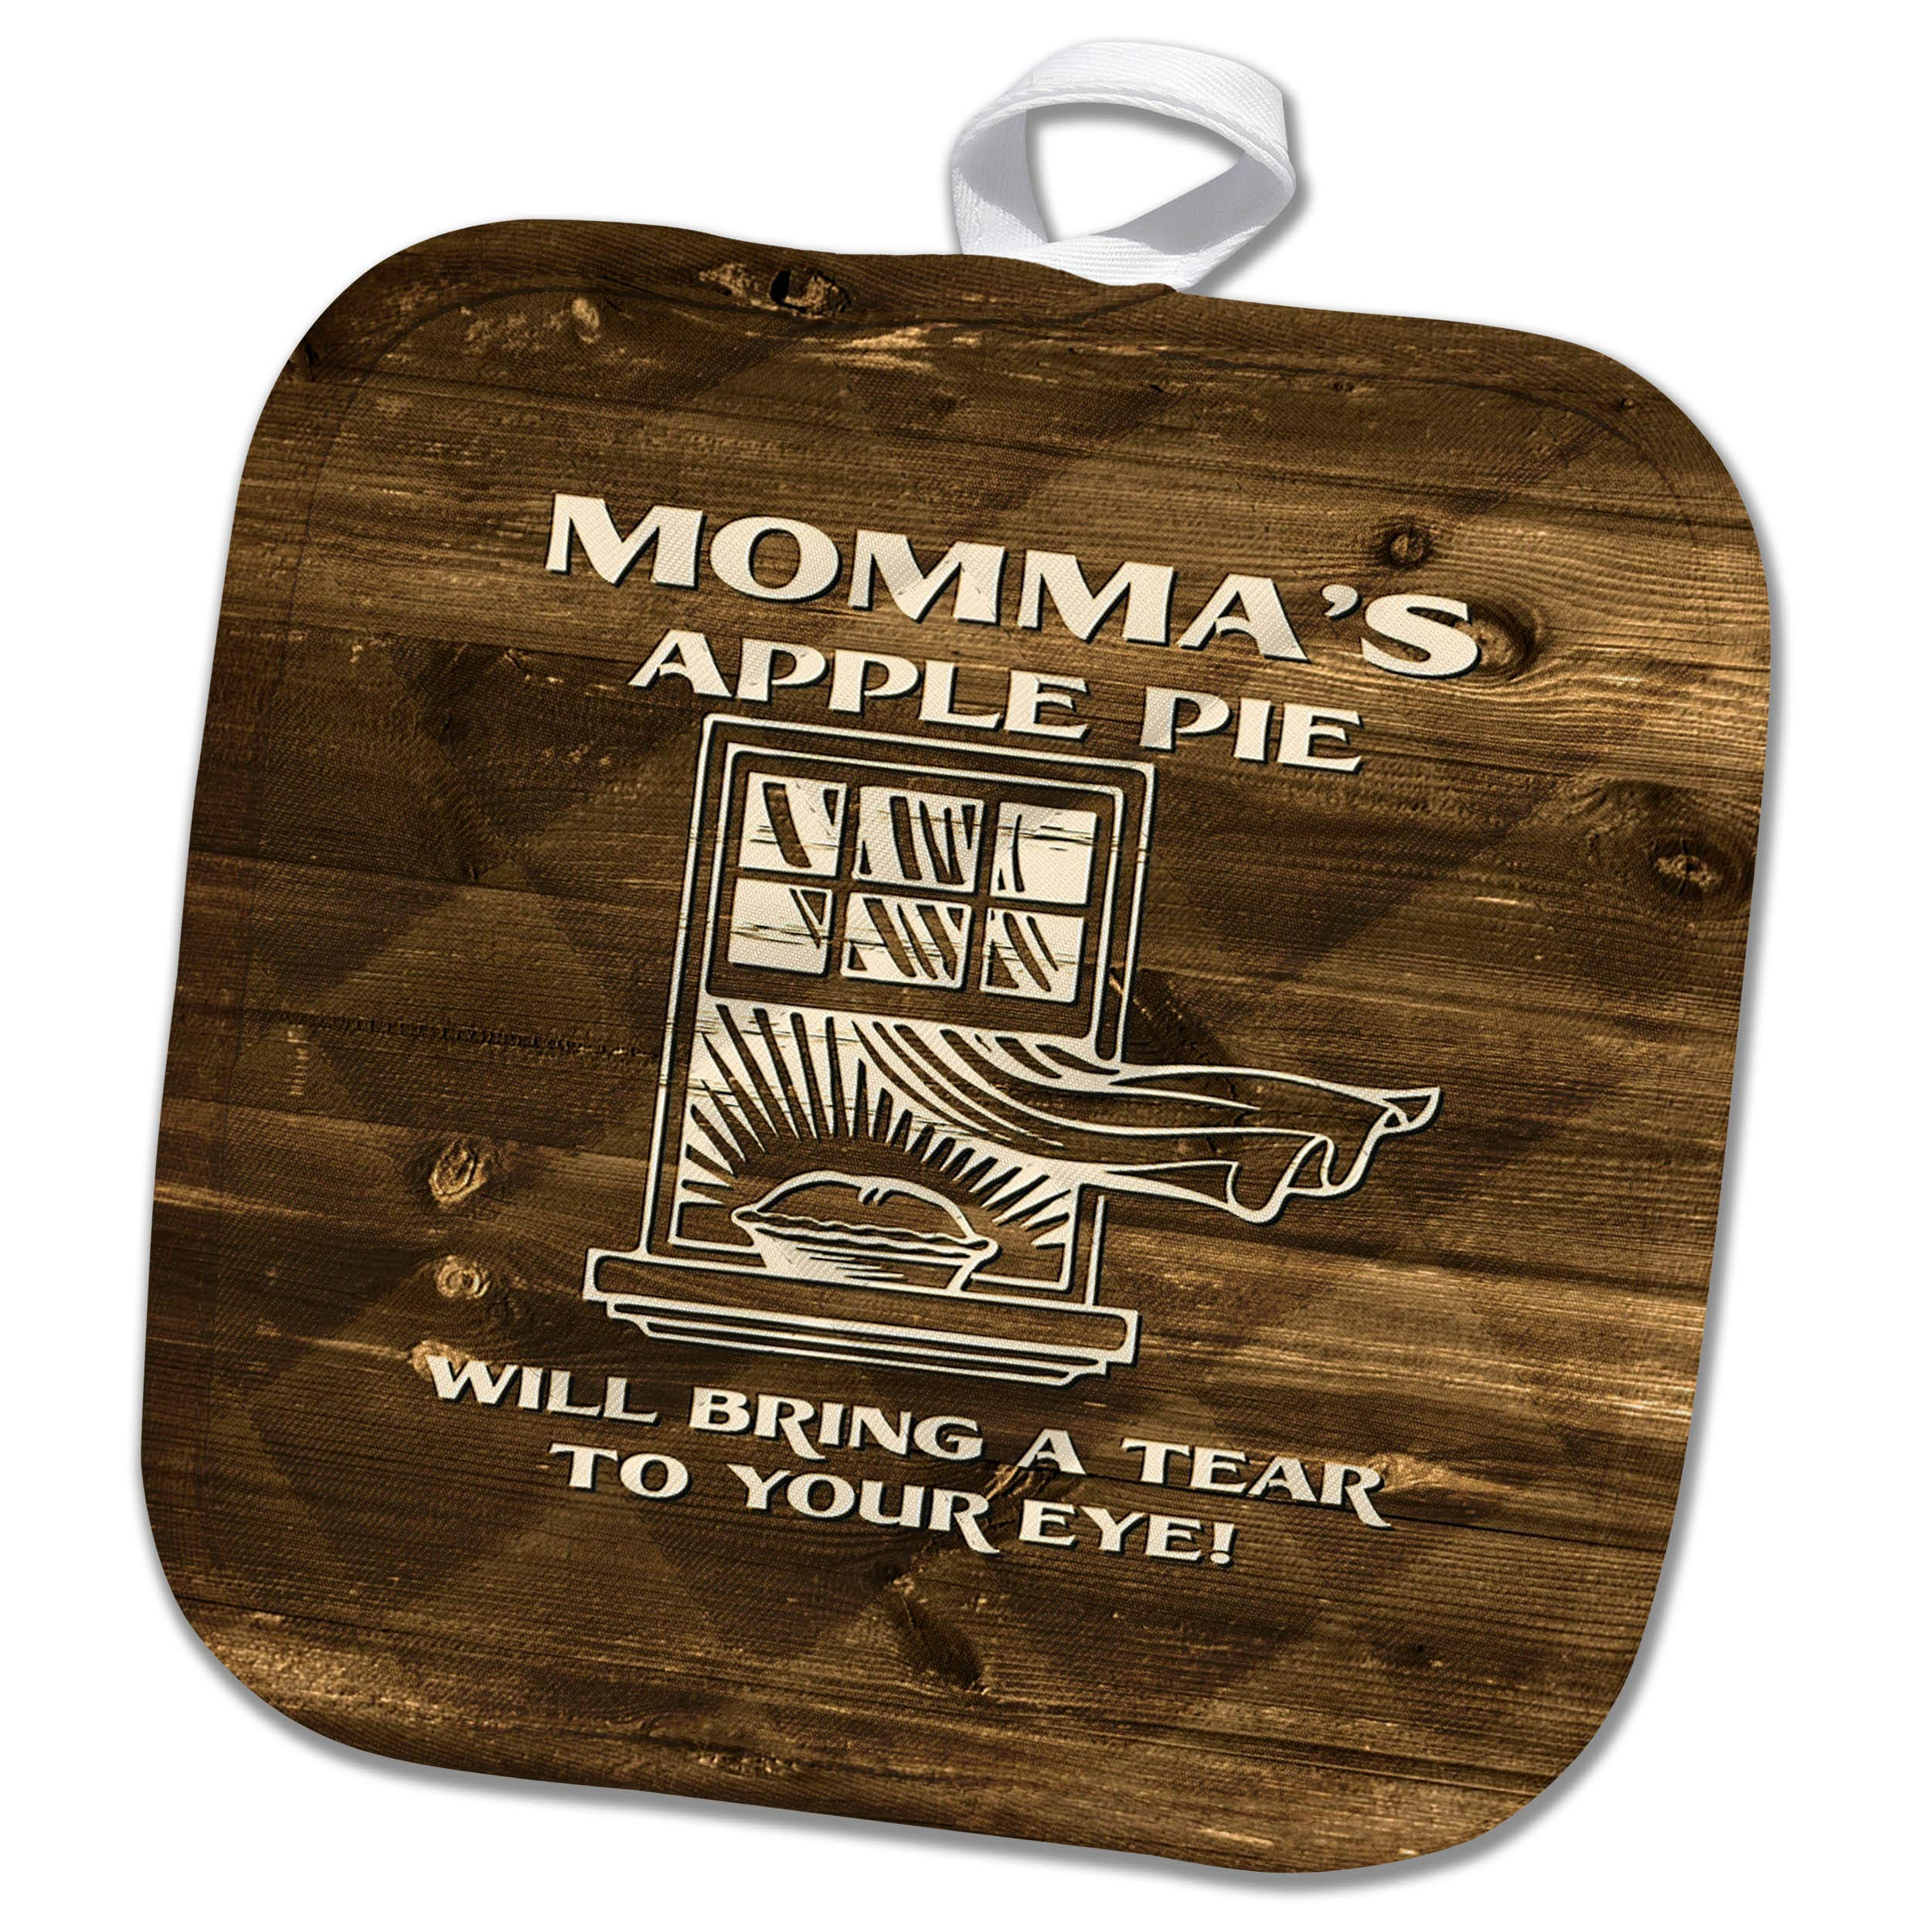 3dRose Russ Billington Designs - Mommas Apple Pie Will Bring a Tear to Your Eye- not Real Wood - 8x8 Potholder (PHL_293745_1)